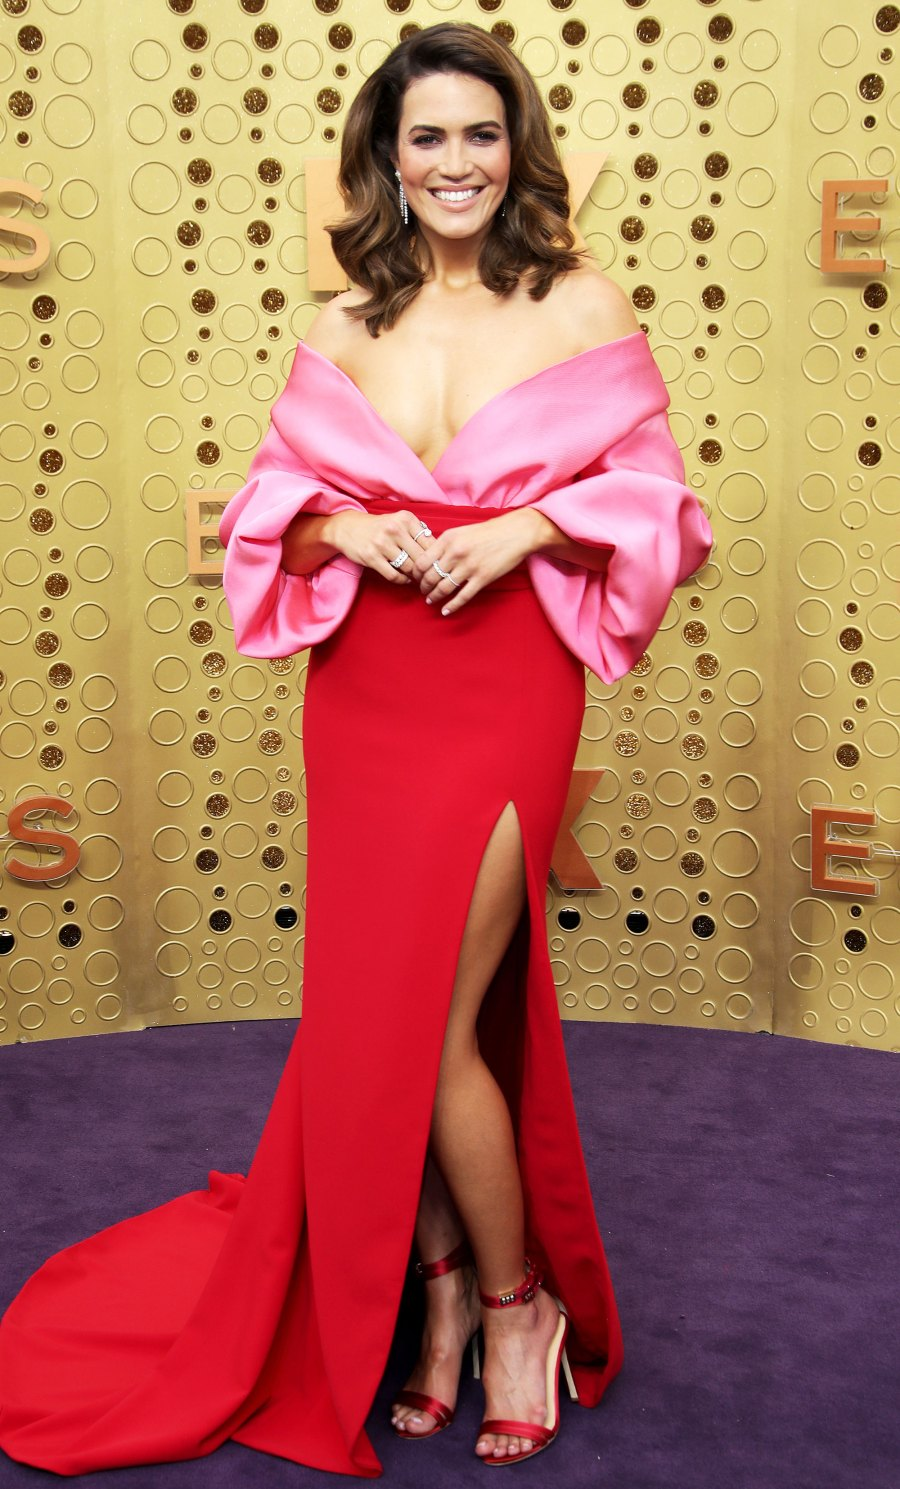 Celebs Wearing Red and Pink - Mandy Moore